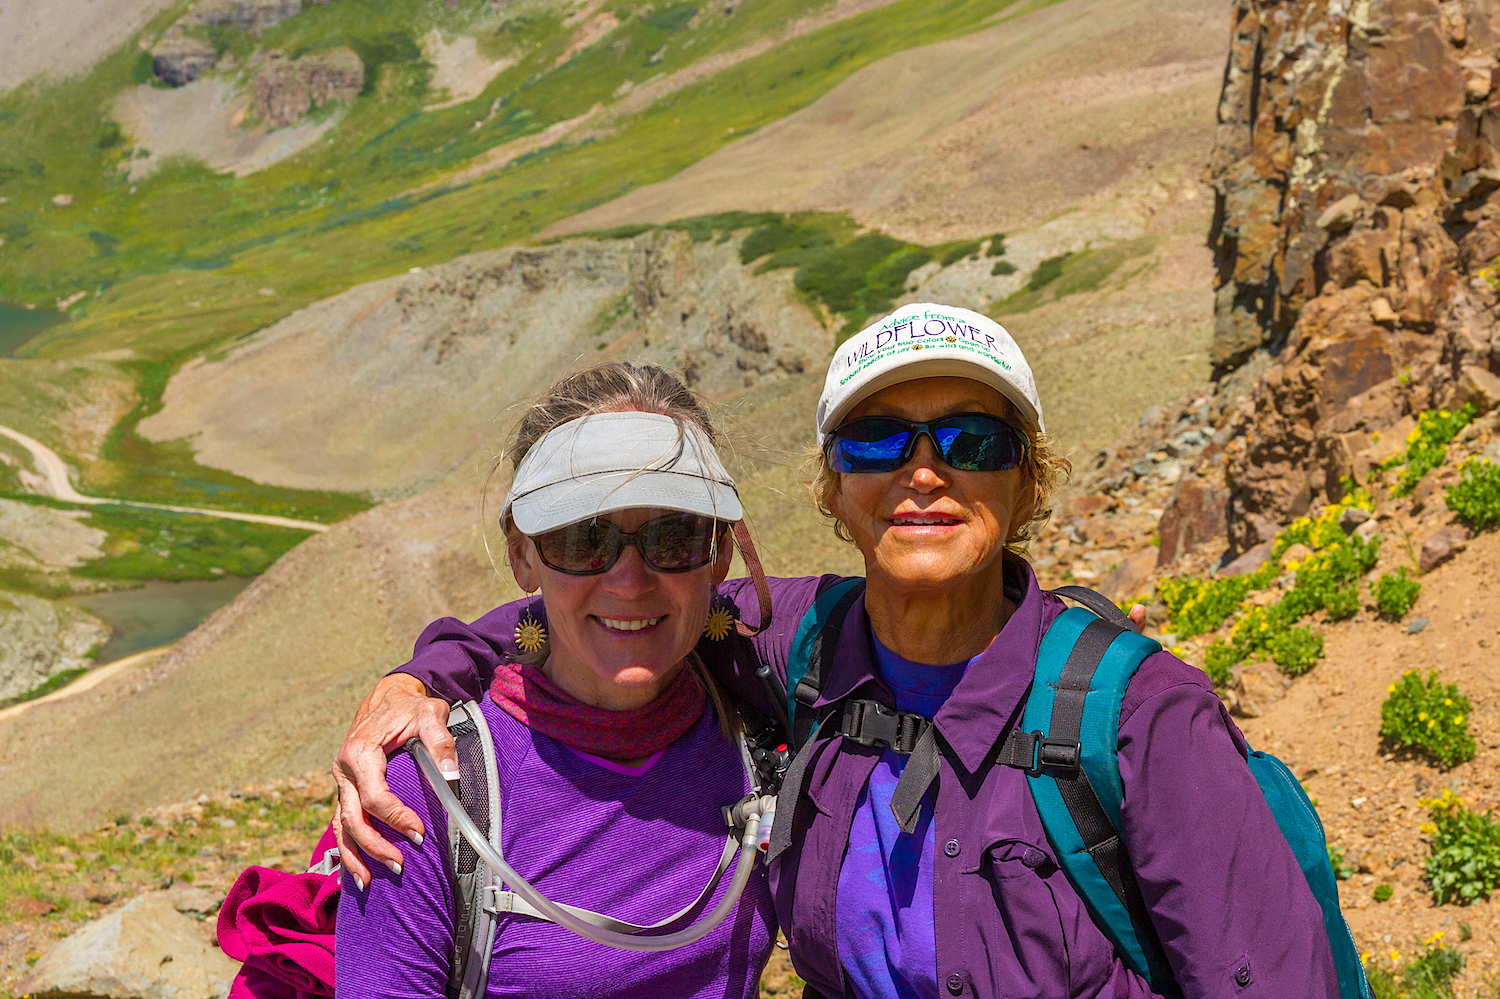 Jane Marie Johnson and Michelle Oppenheimer on Clear Lake Trail, Image # 4057